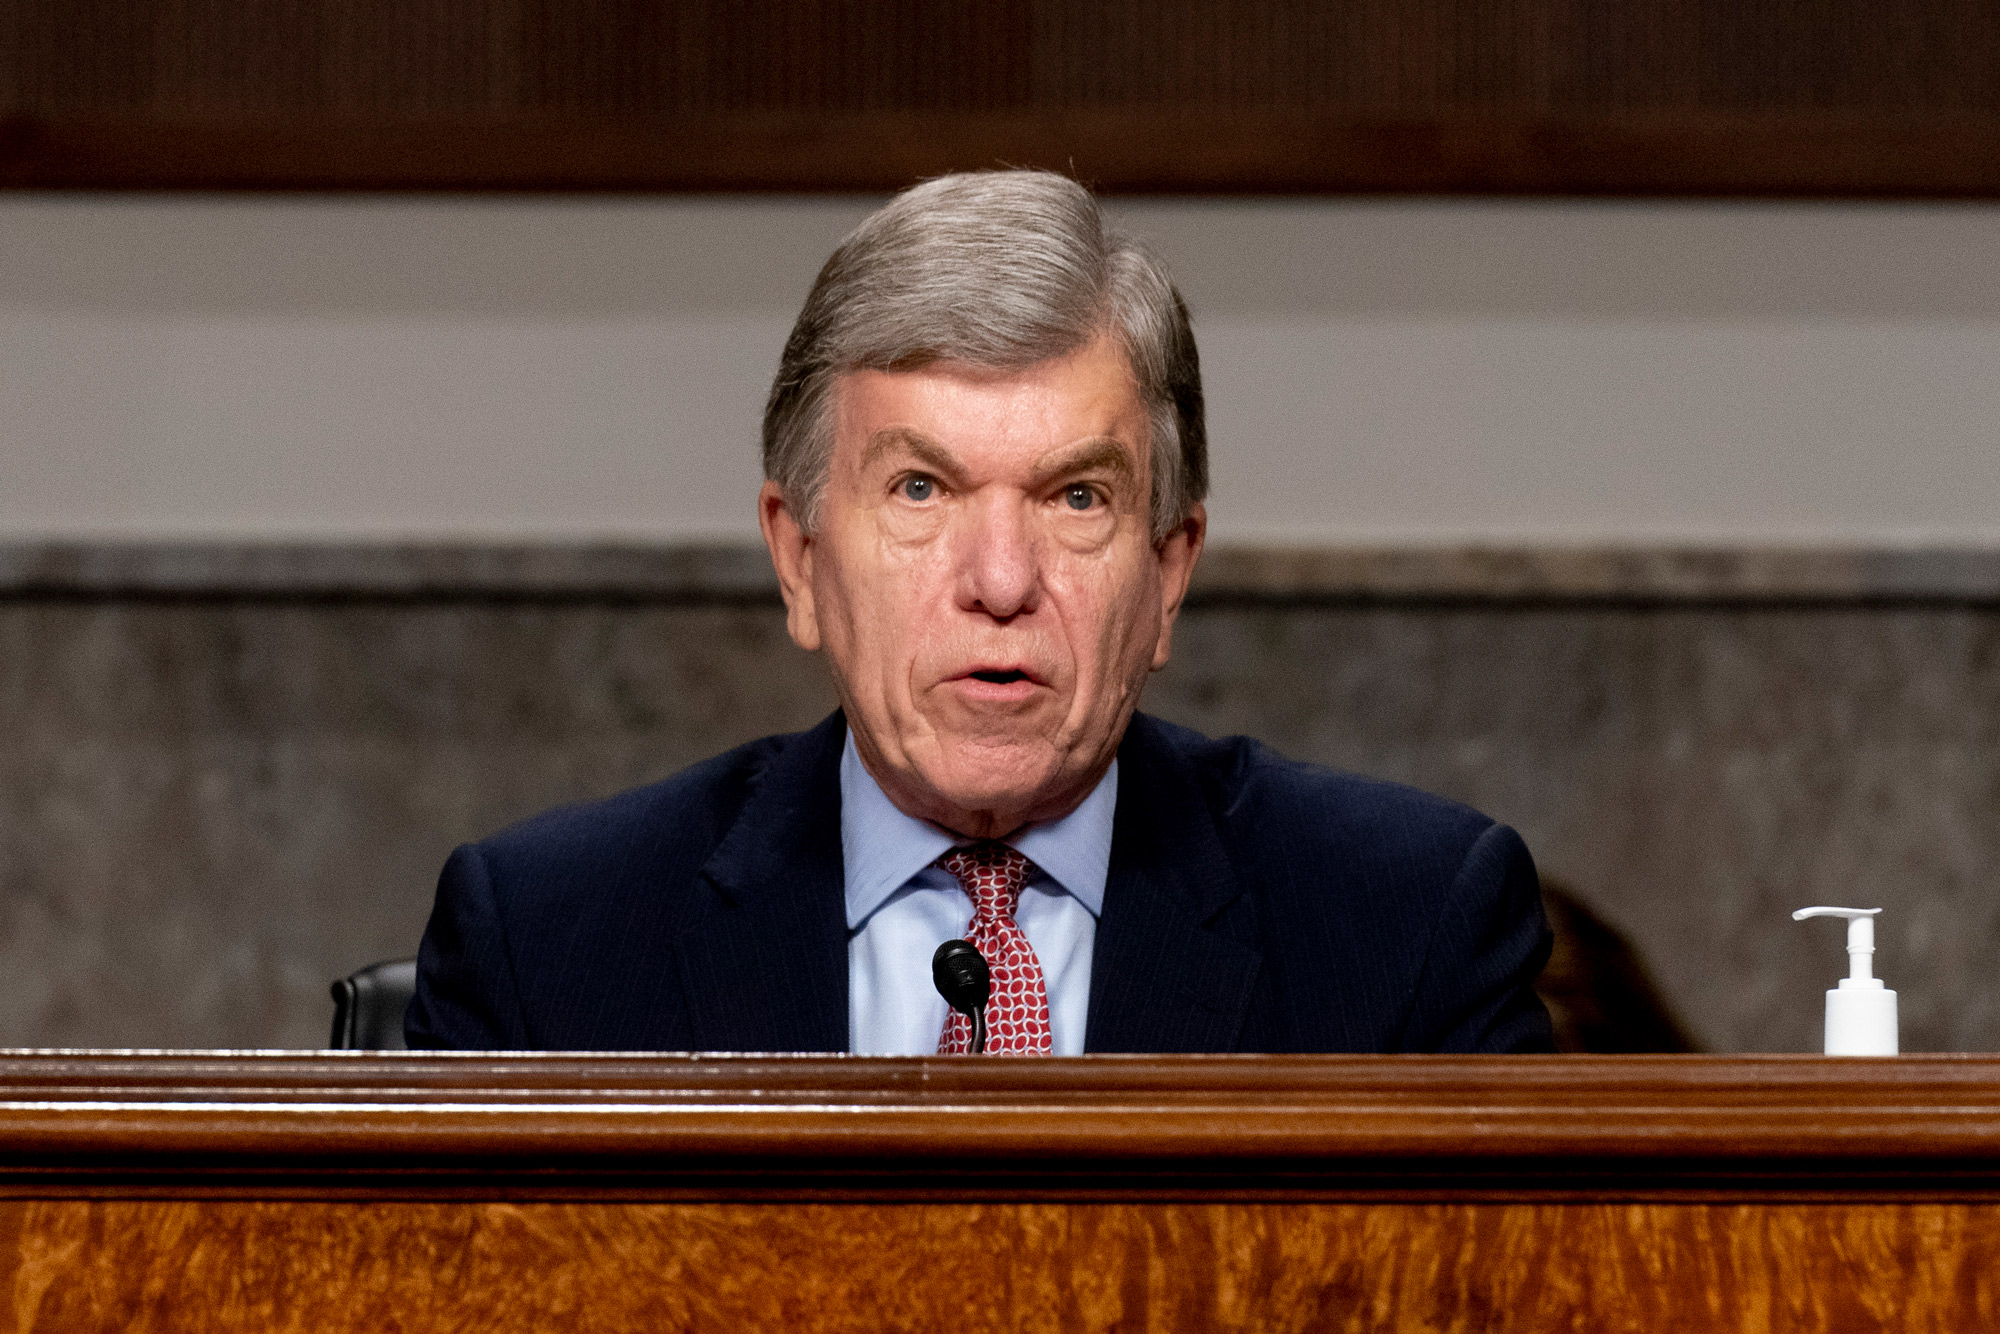 U.S. Senate Appropriations subcommittee Chairman Roy Blunt speaks at a hearing on September 16 in Washington, DC.